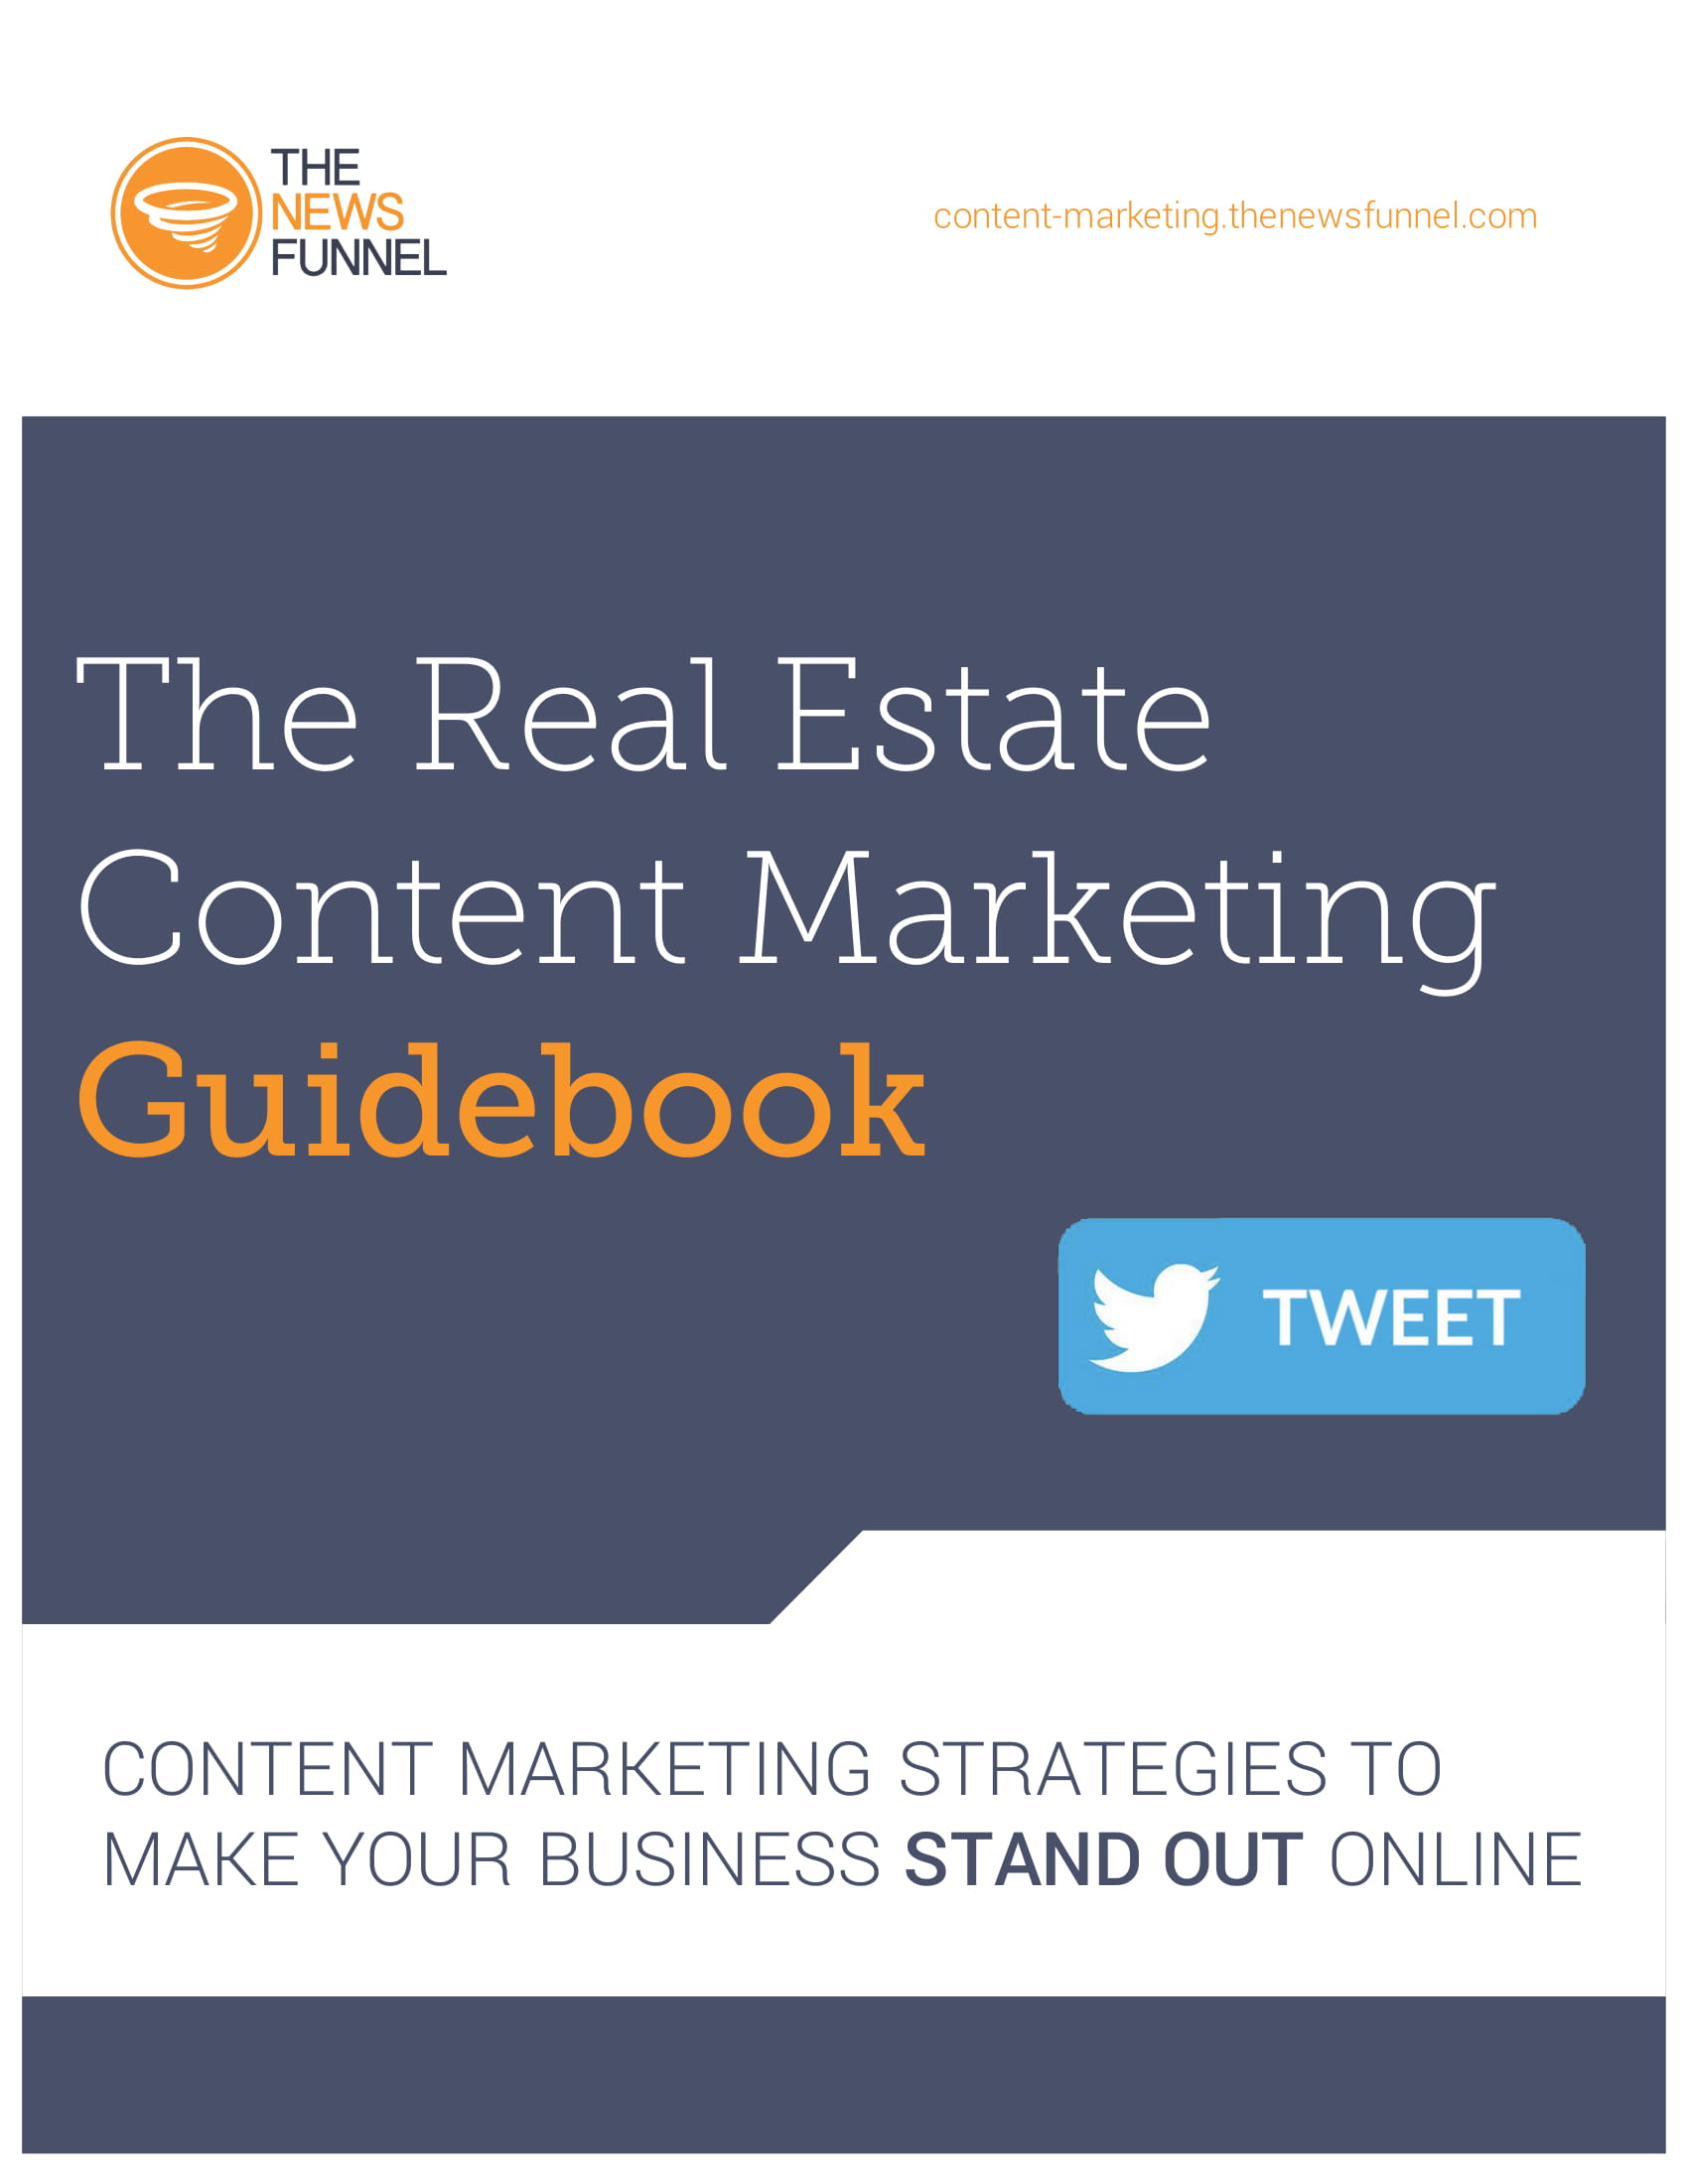 real estate content marketing guidebook for real estate agents example 01